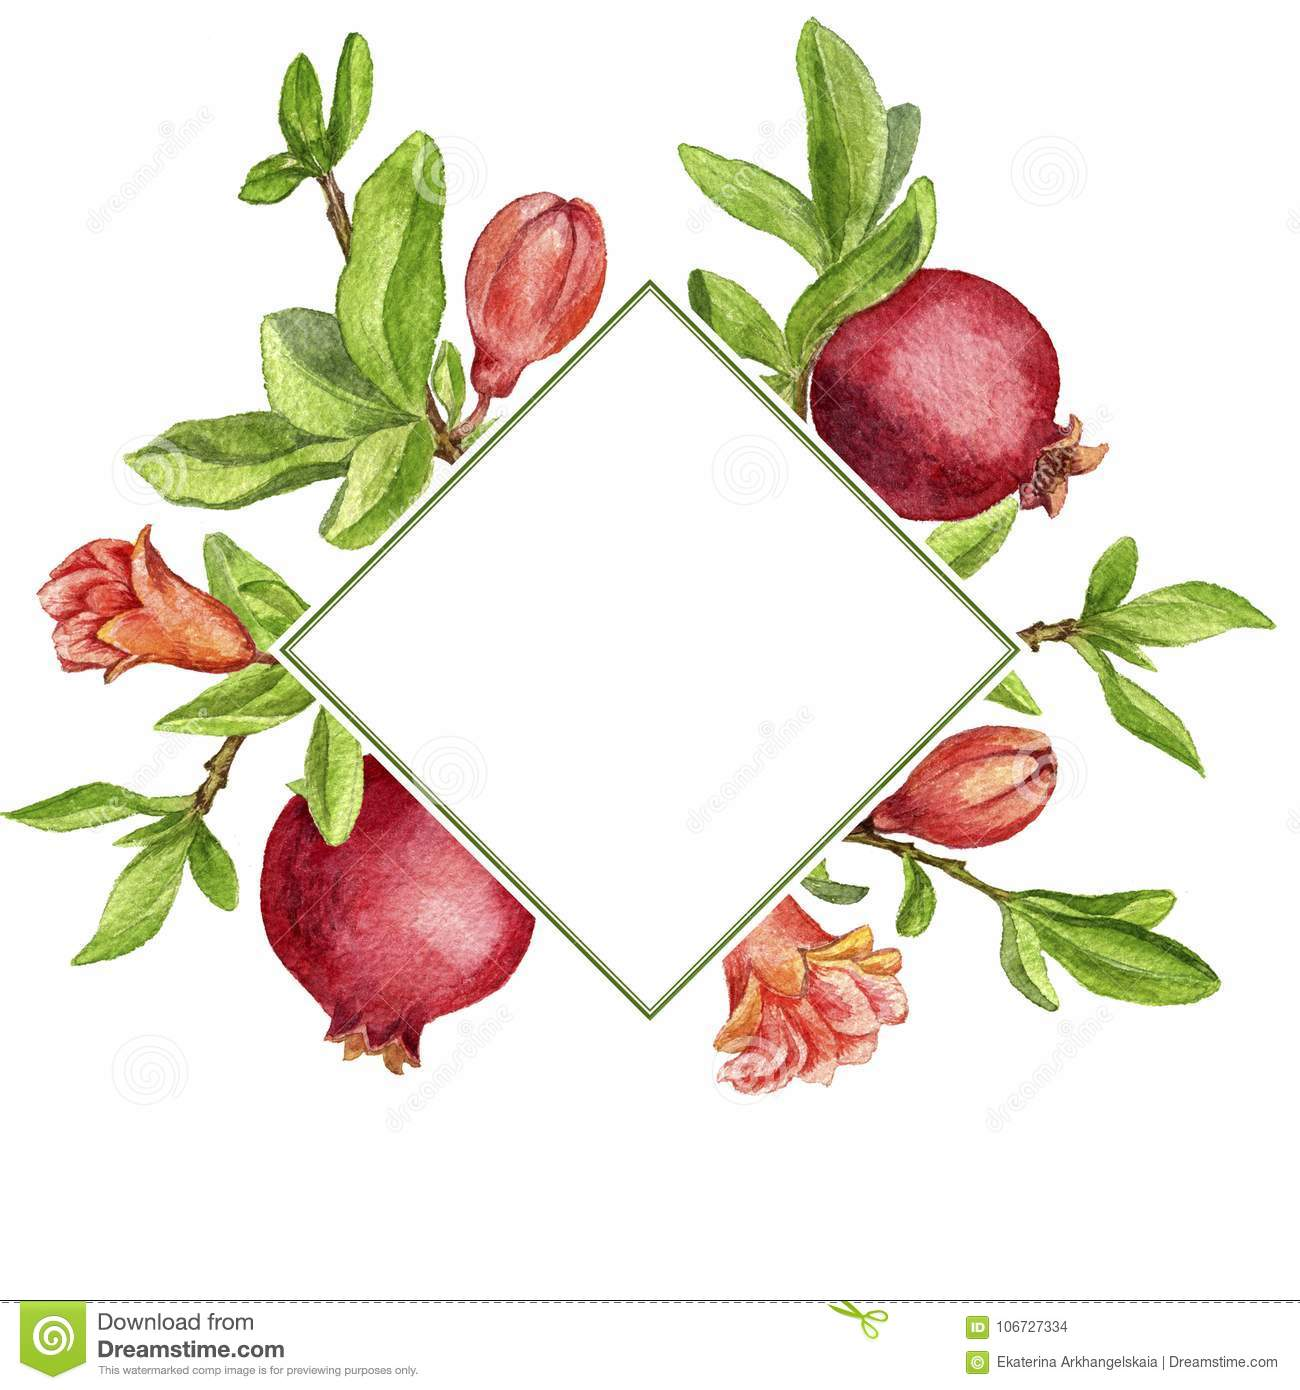 Template With Fruit Tree Branches Leaves Flower And Pomegranates Stock Illustration Illustration Of Drawing Card 106727334